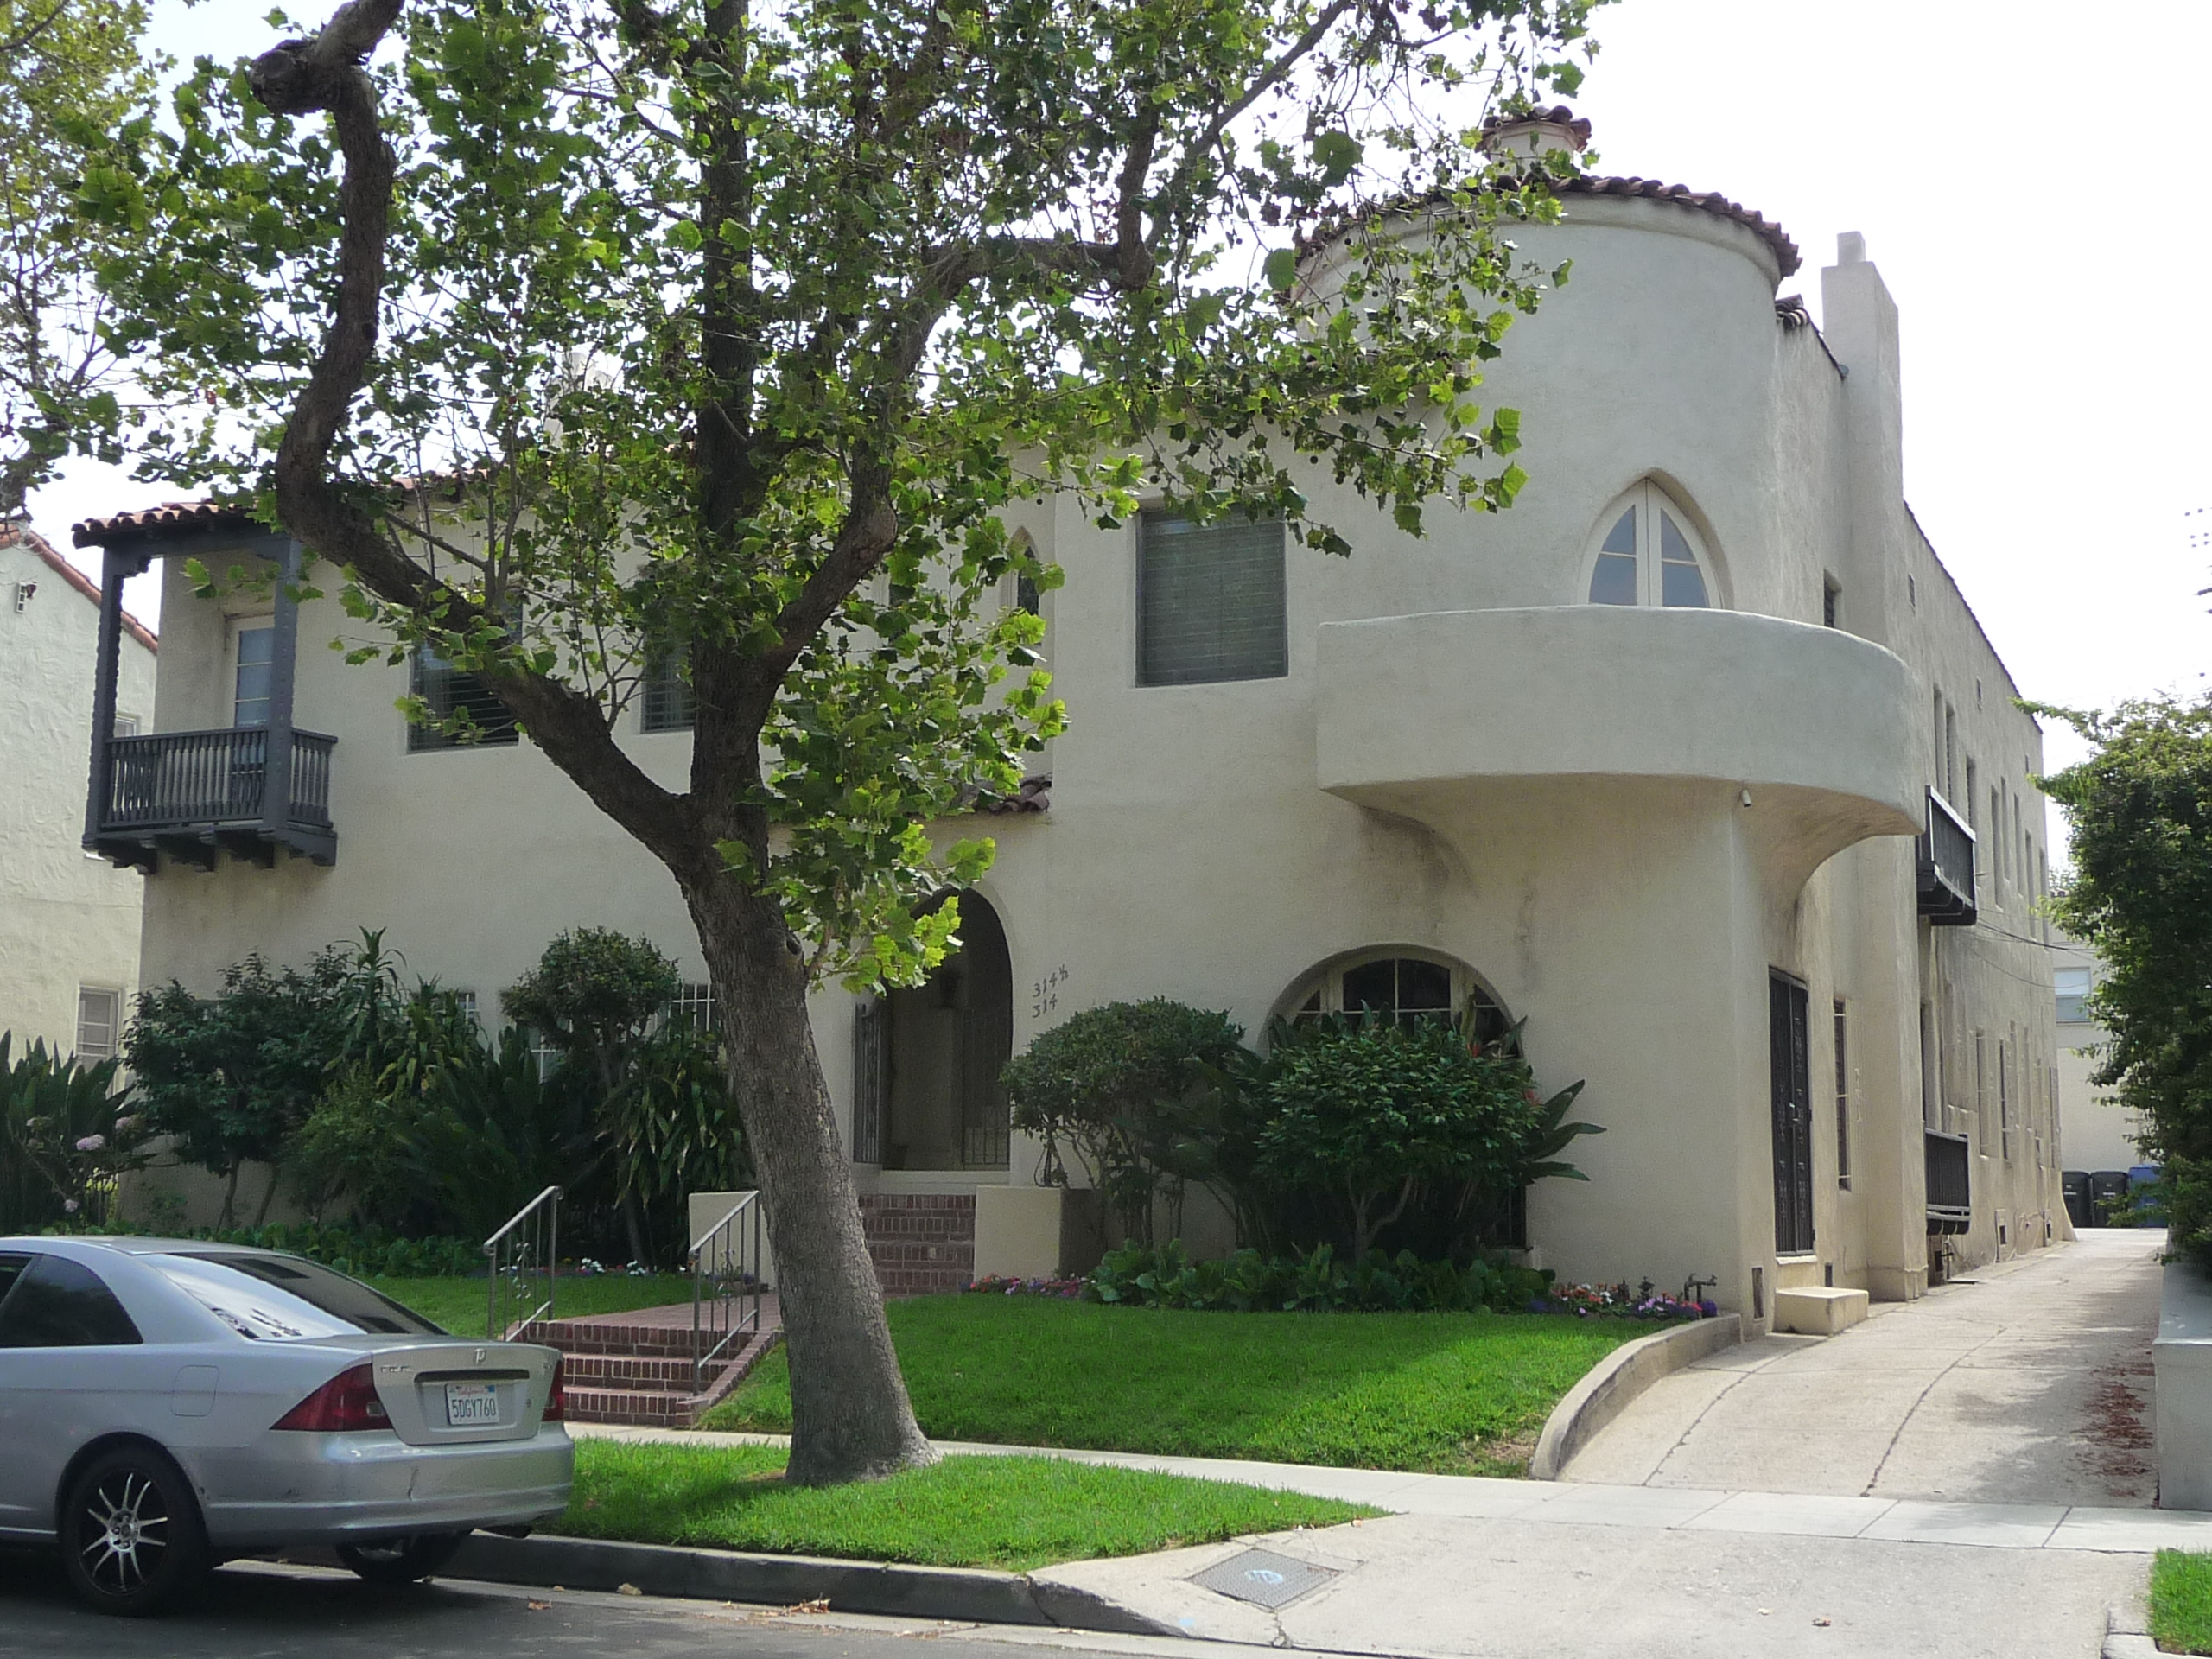 318 N SYCAMORE AVE - PHOTO